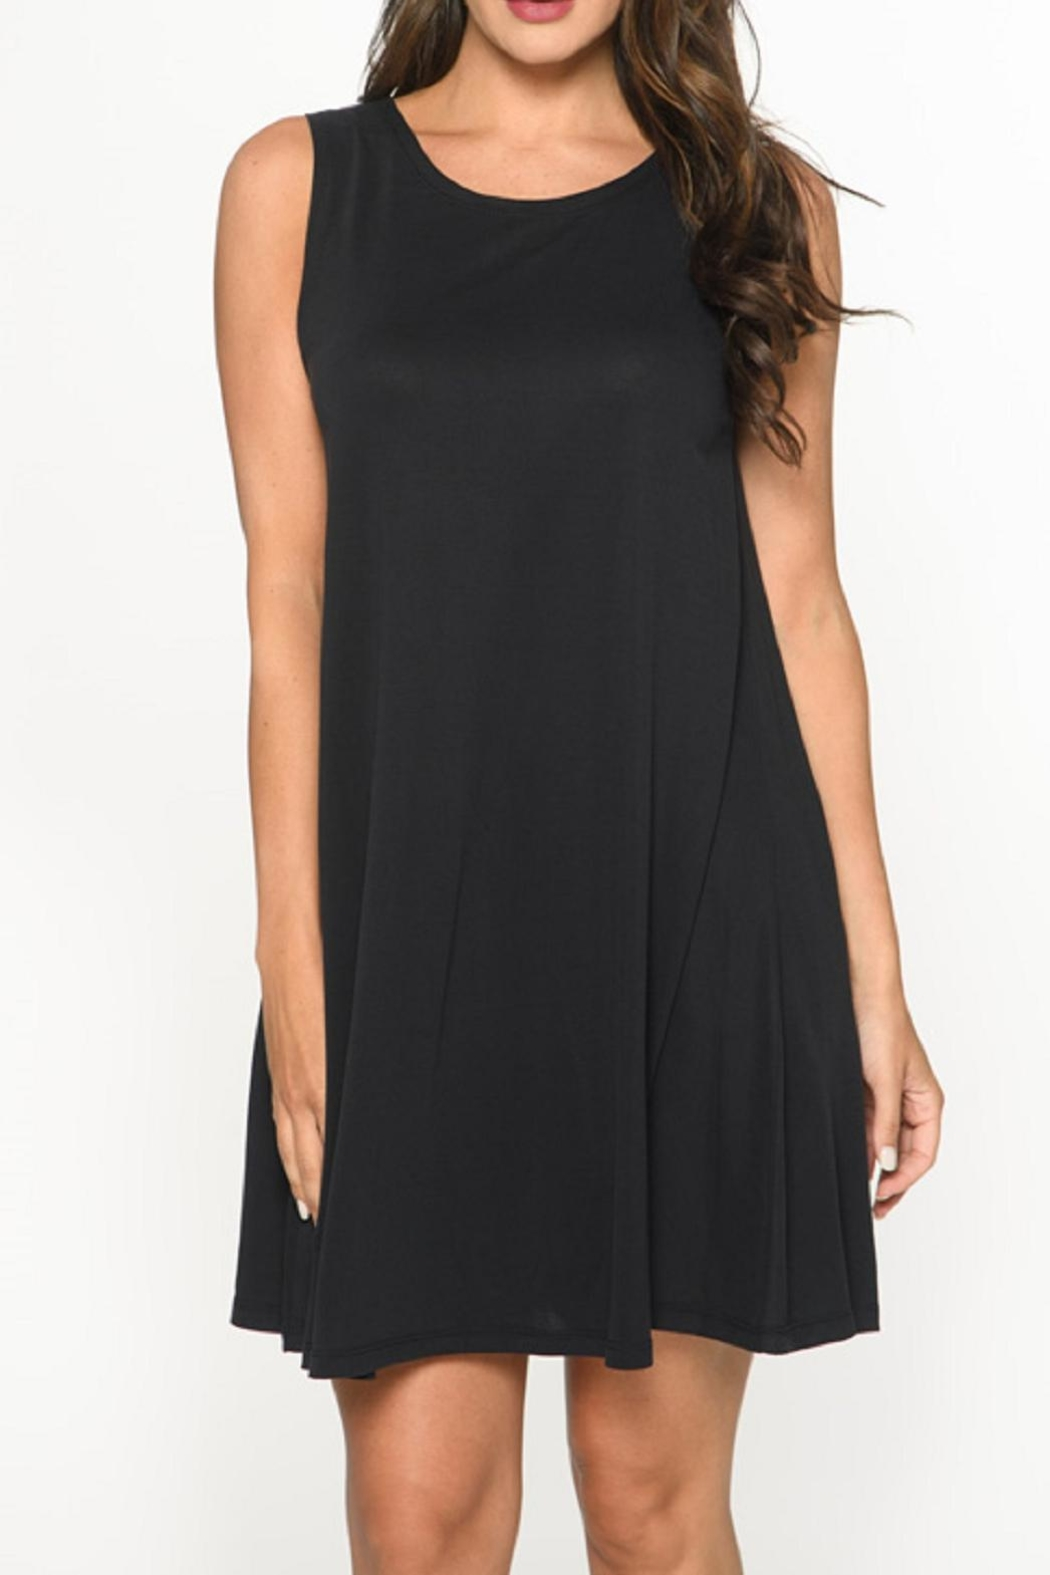 Isle Apparel Swing Tank Dress - Main Image